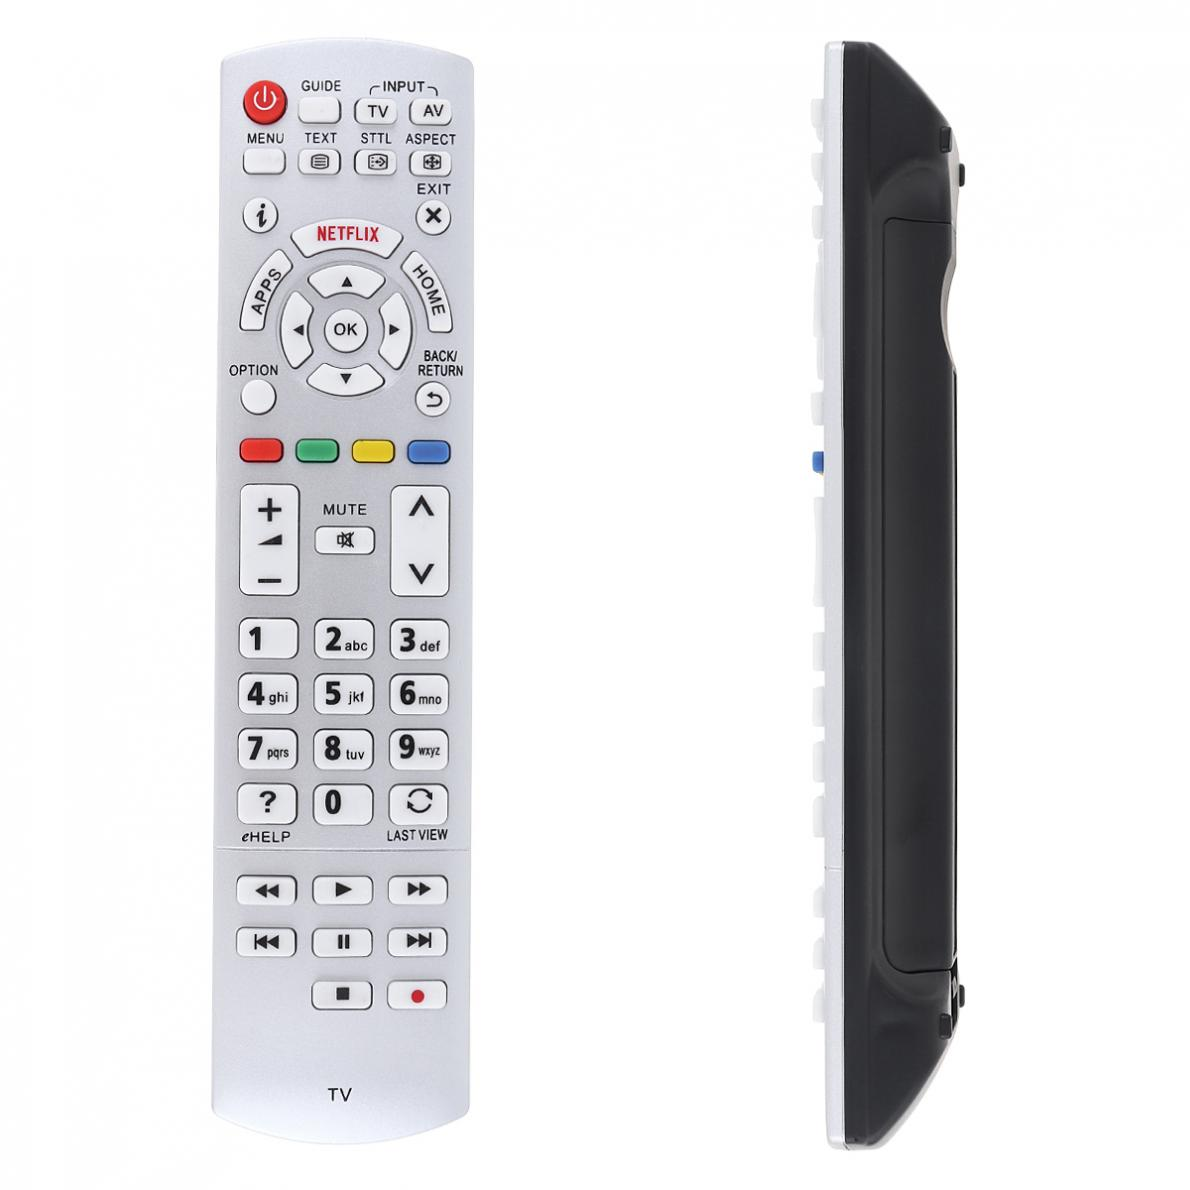 433MHZ Smart TV Remote Control with Long Control Distance Suitable for Panasonic N2QAYB001010 / N2QAYB000842 / N2QAYB000840